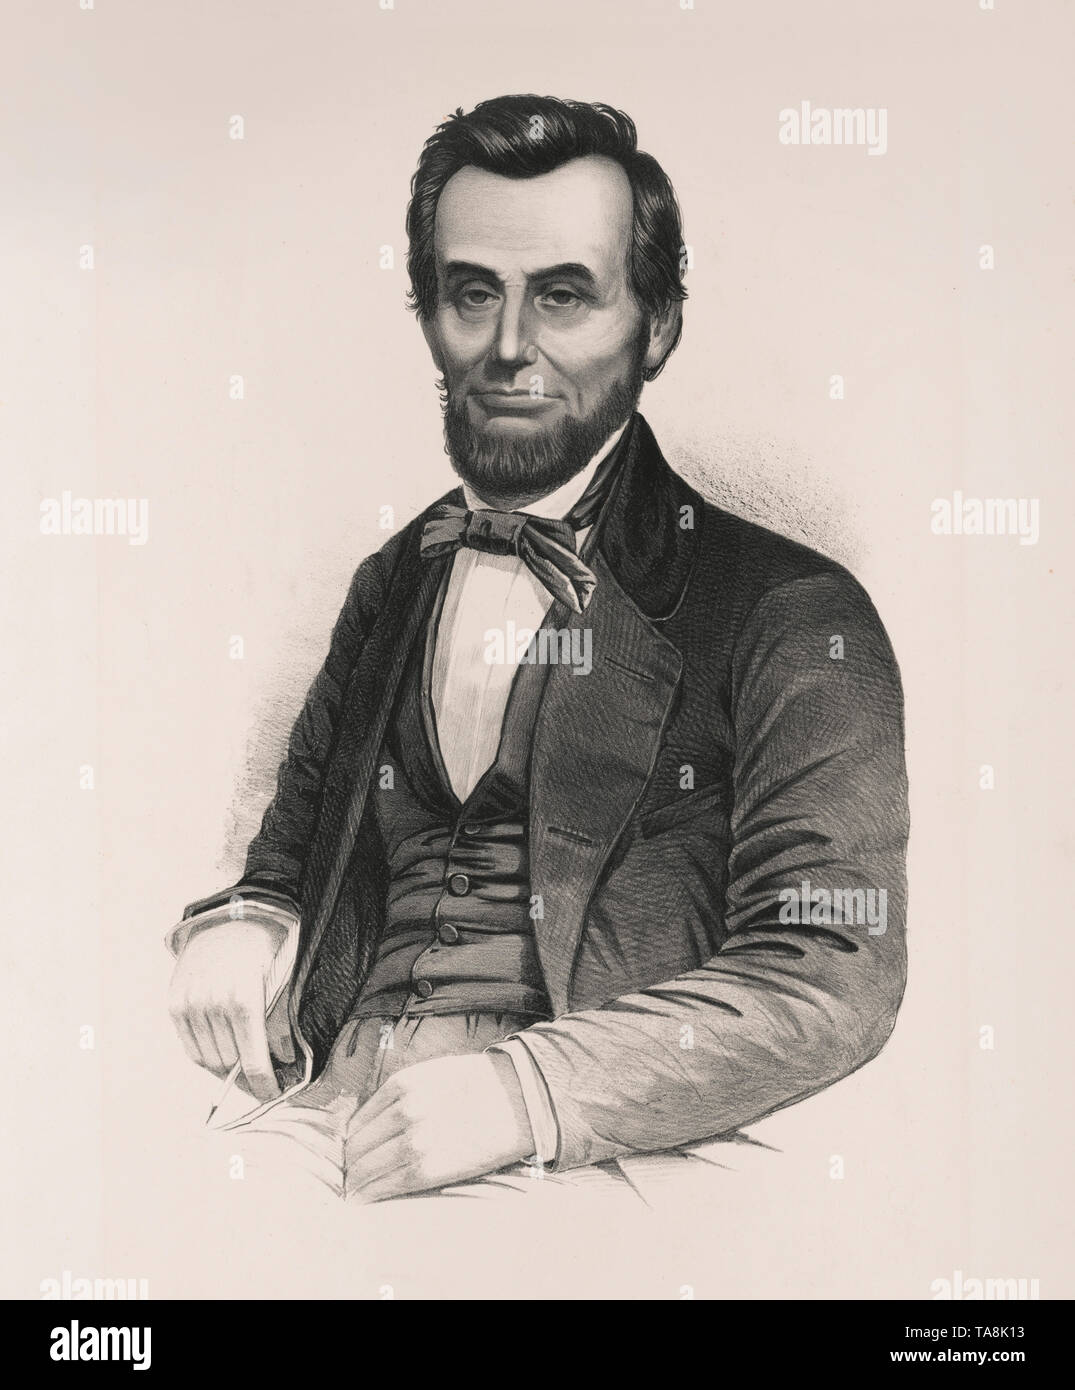 Half-Length Seated Portrait of Abraham Lincoln, Unknown Artist - Stock Image